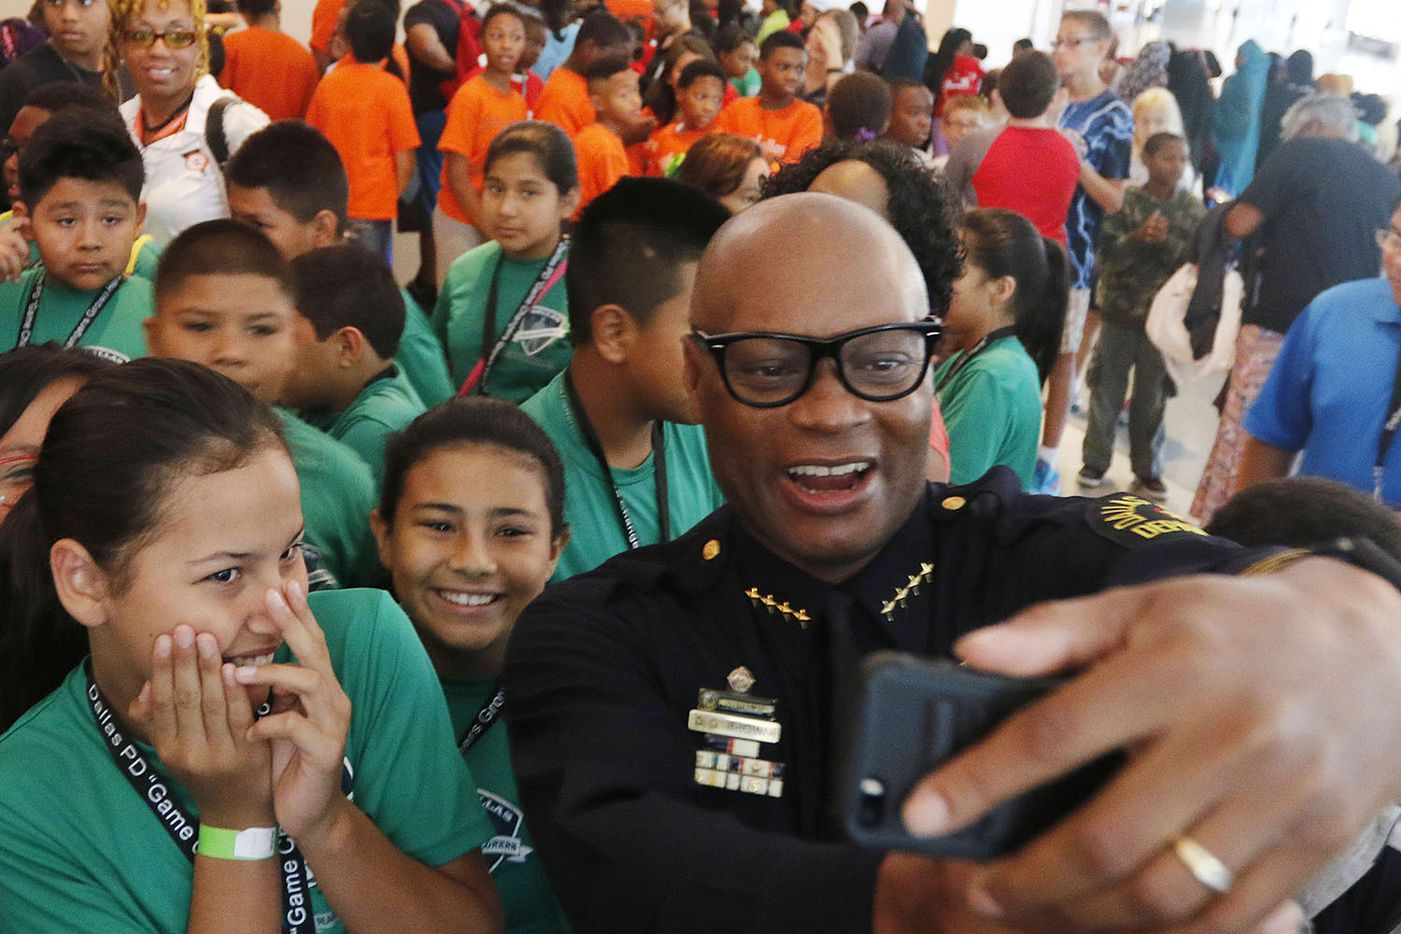 """Dallas Chief of Police David Brown takes a selfie with a group of kids during """"Let's Talk,"""" a youth forum to discuss how teens should interact with cops and other issues at Kay Bailey Hutchison Convention Center in Dallas on Tuesday, August, 4, 2015."""